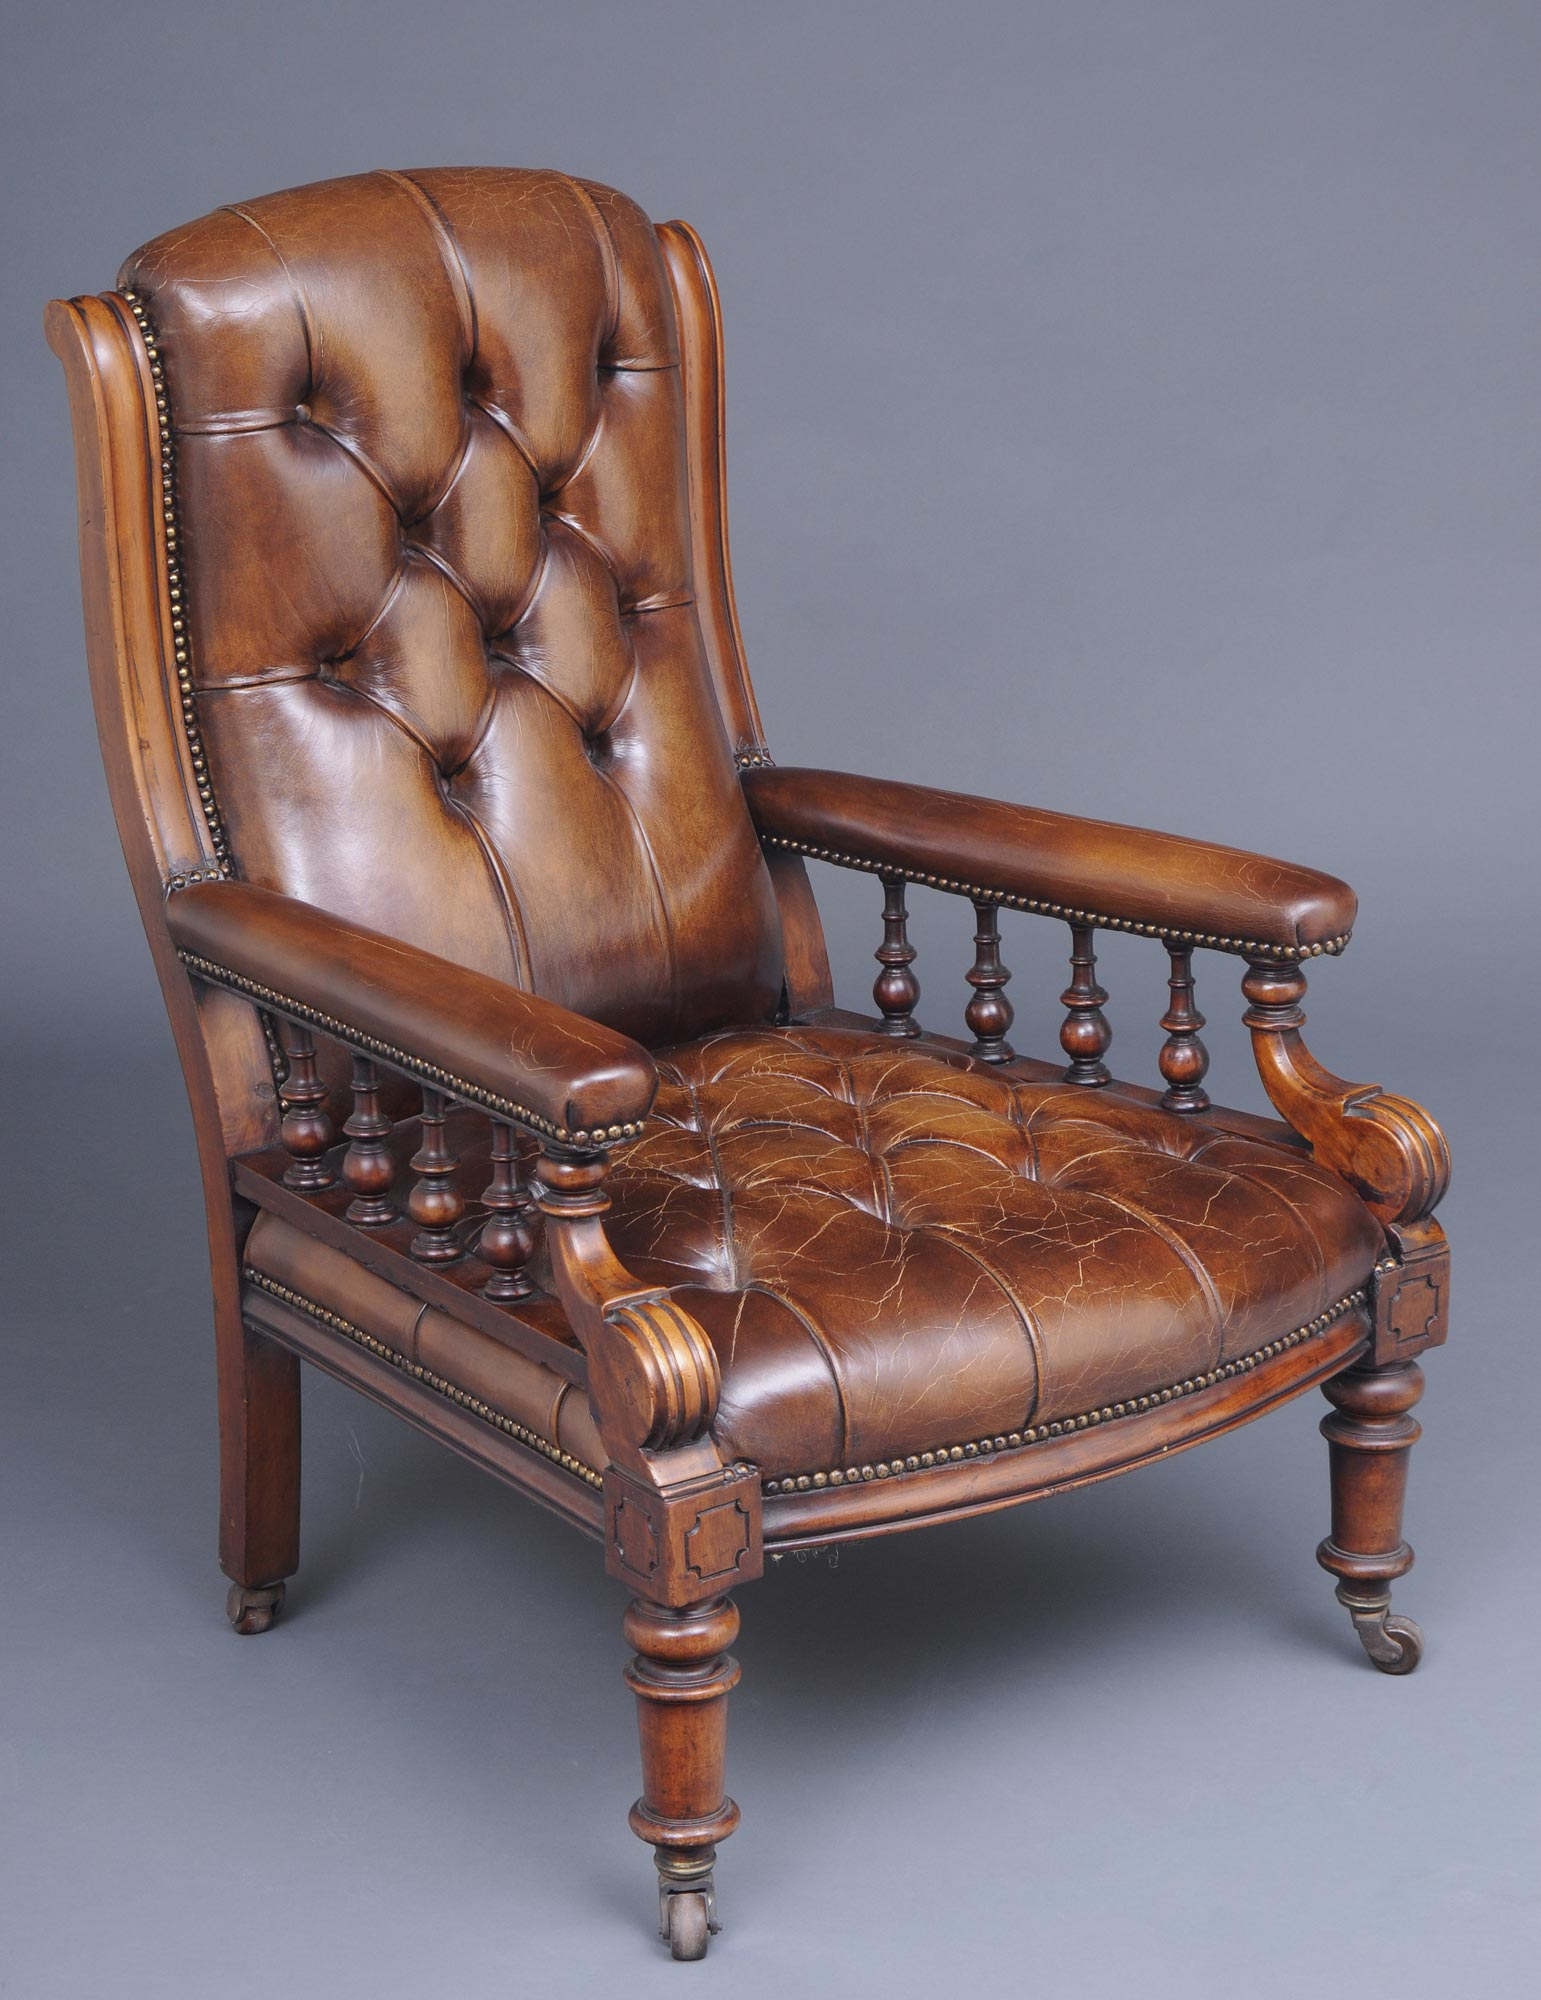 Antique victorian armchair - English Antique Victorian Mahogany And Leather Library Armchair Circa 1860